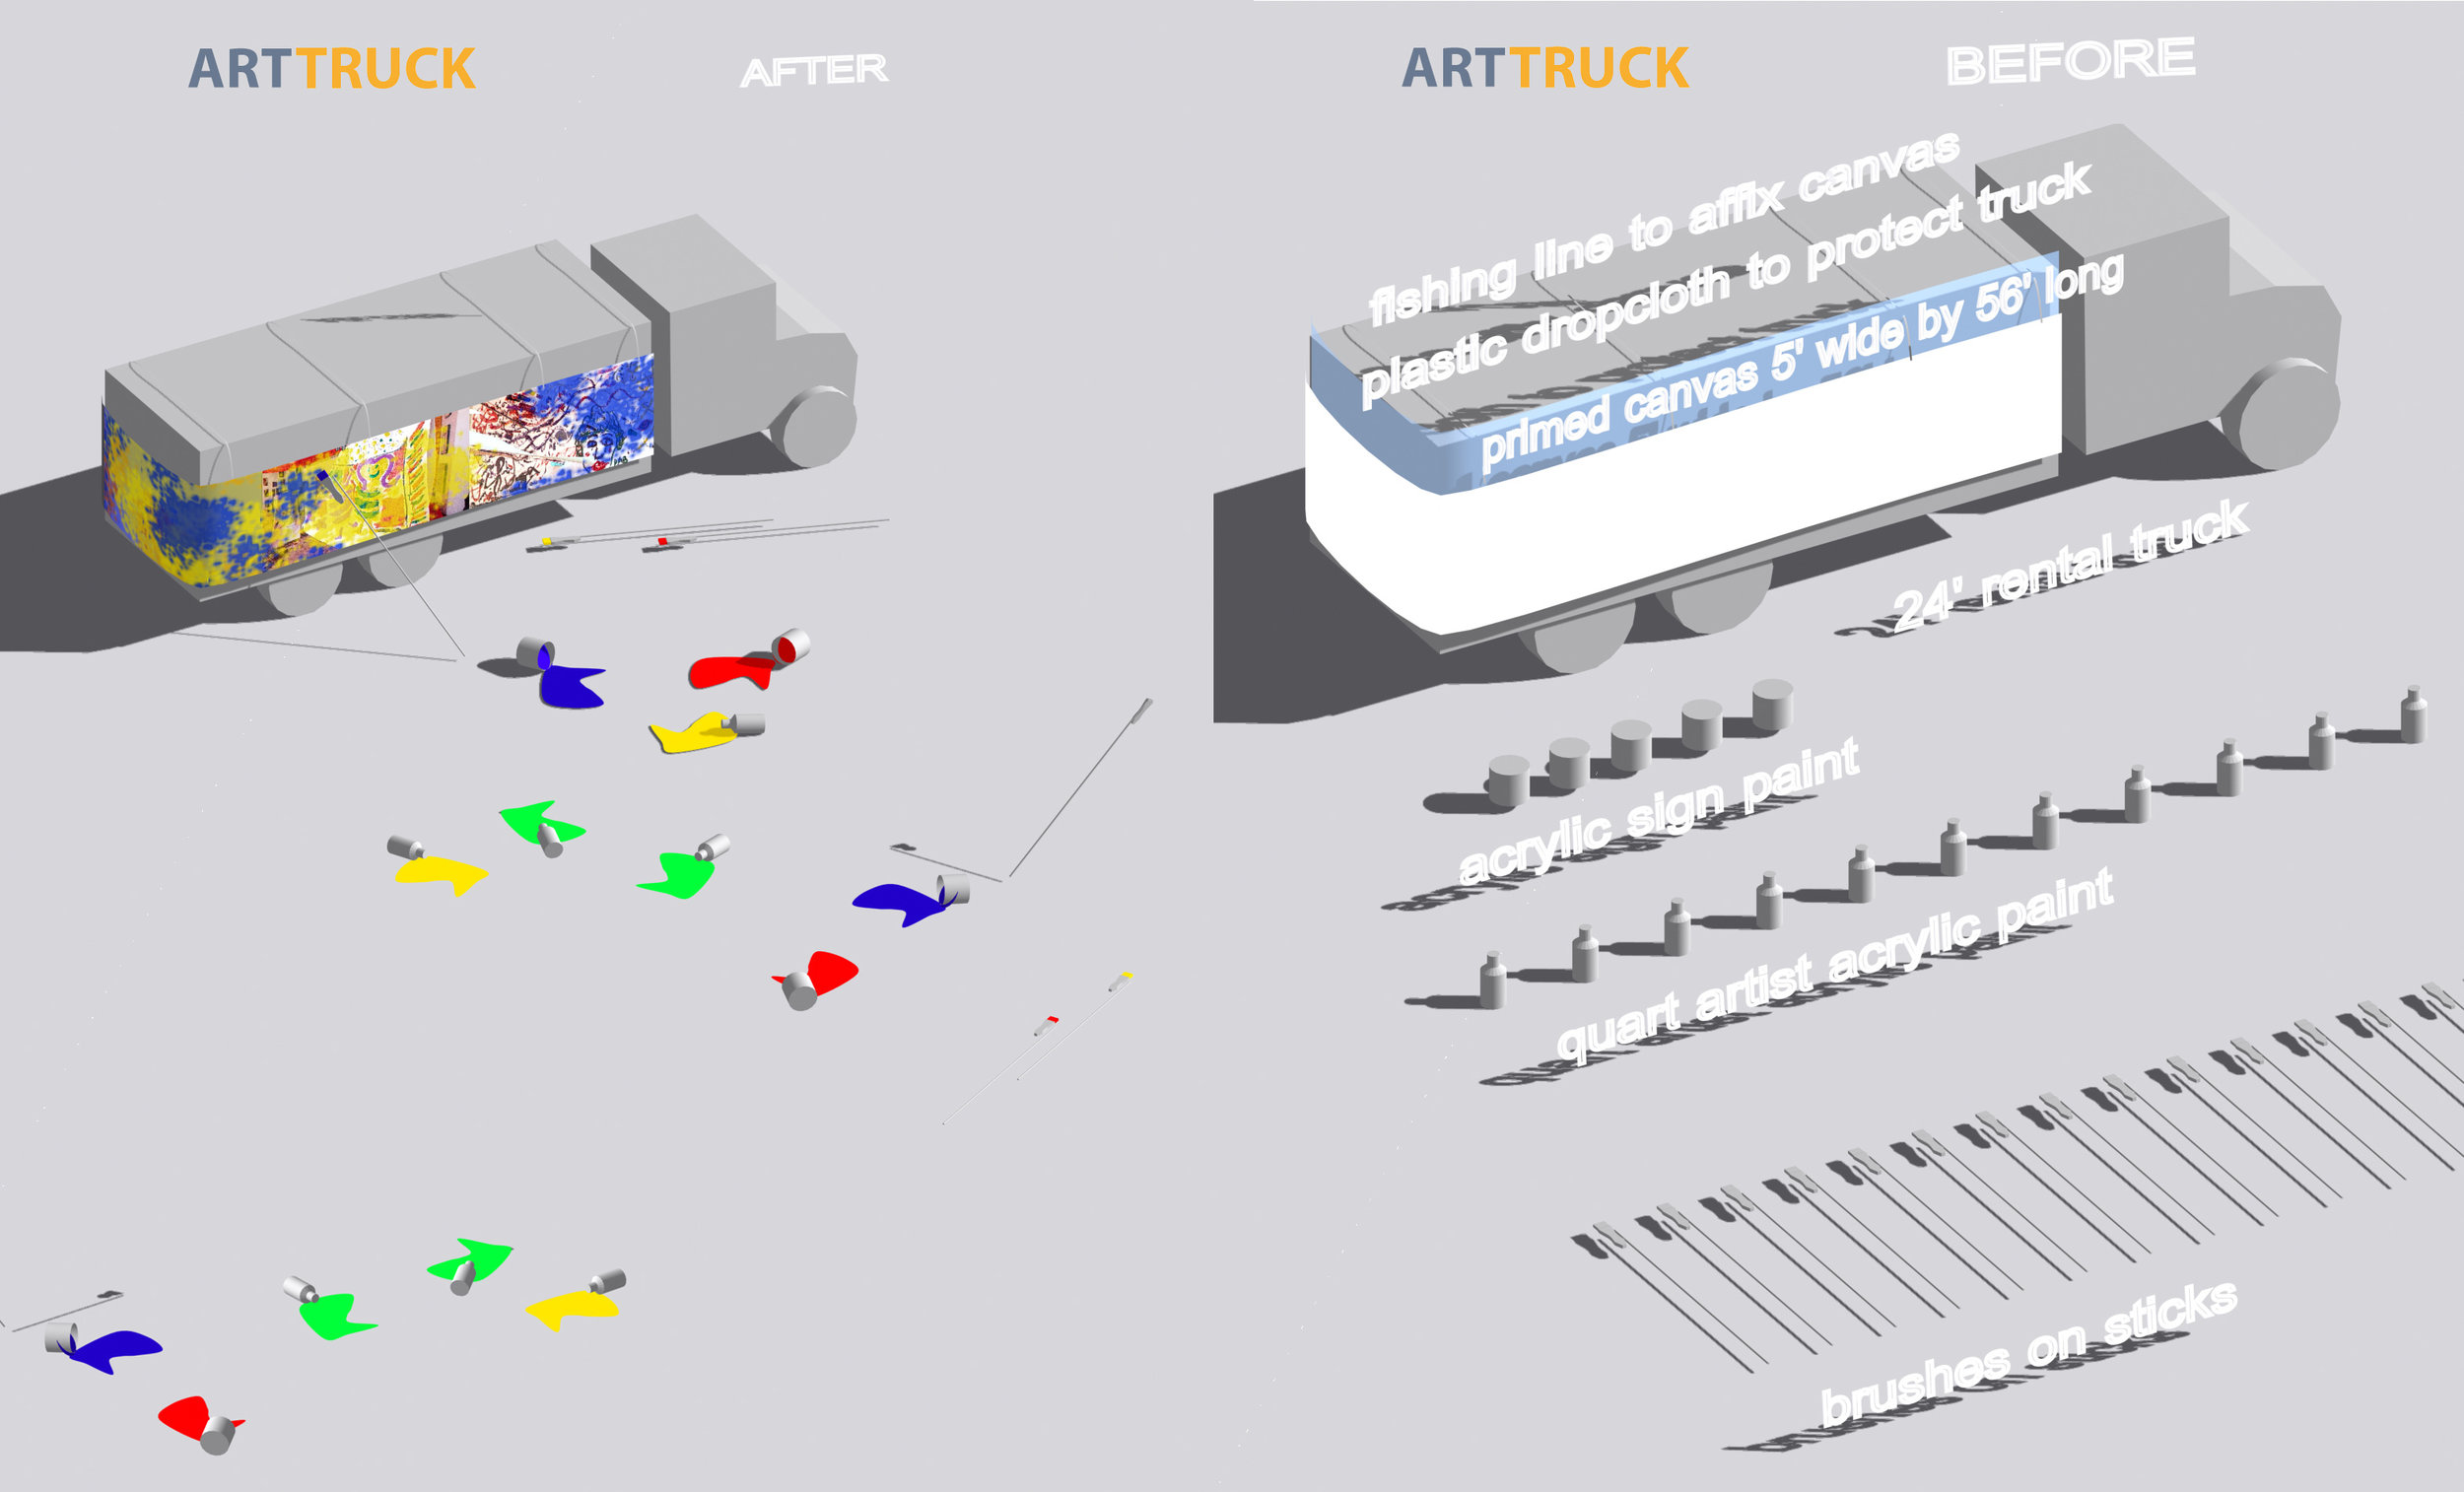 Art Truck - performance and installation with public participation